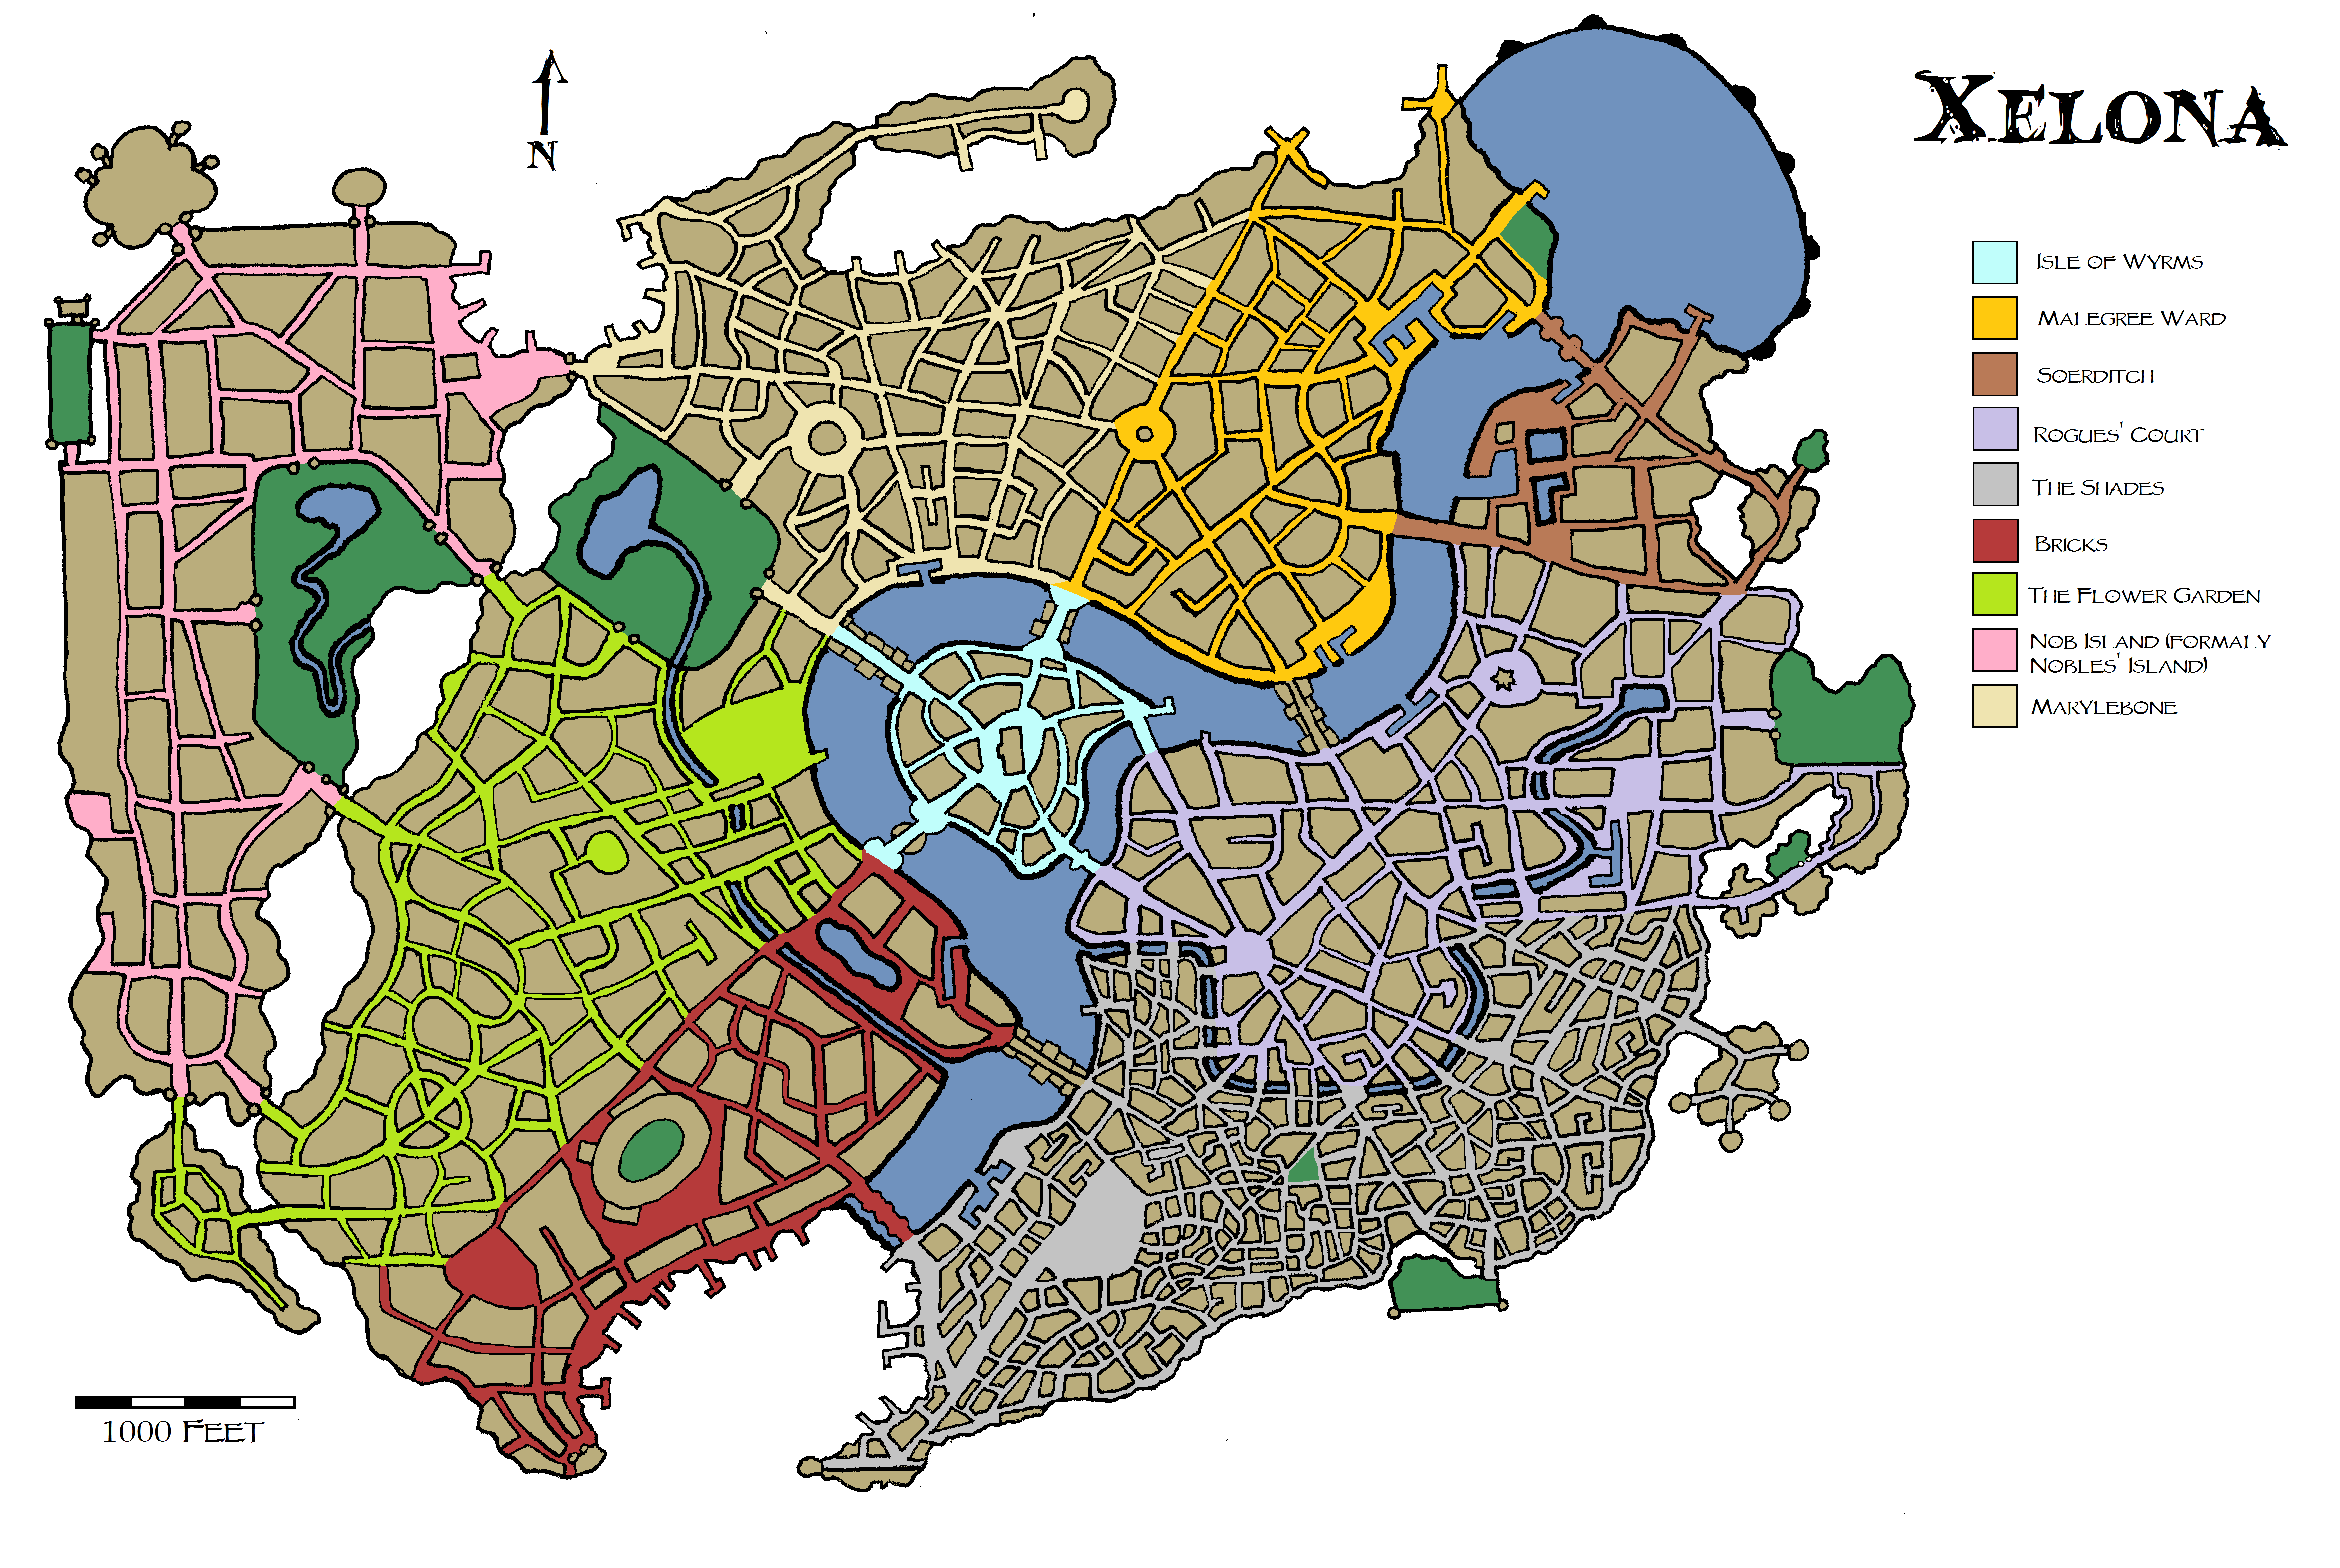 Xelona__Districts.png